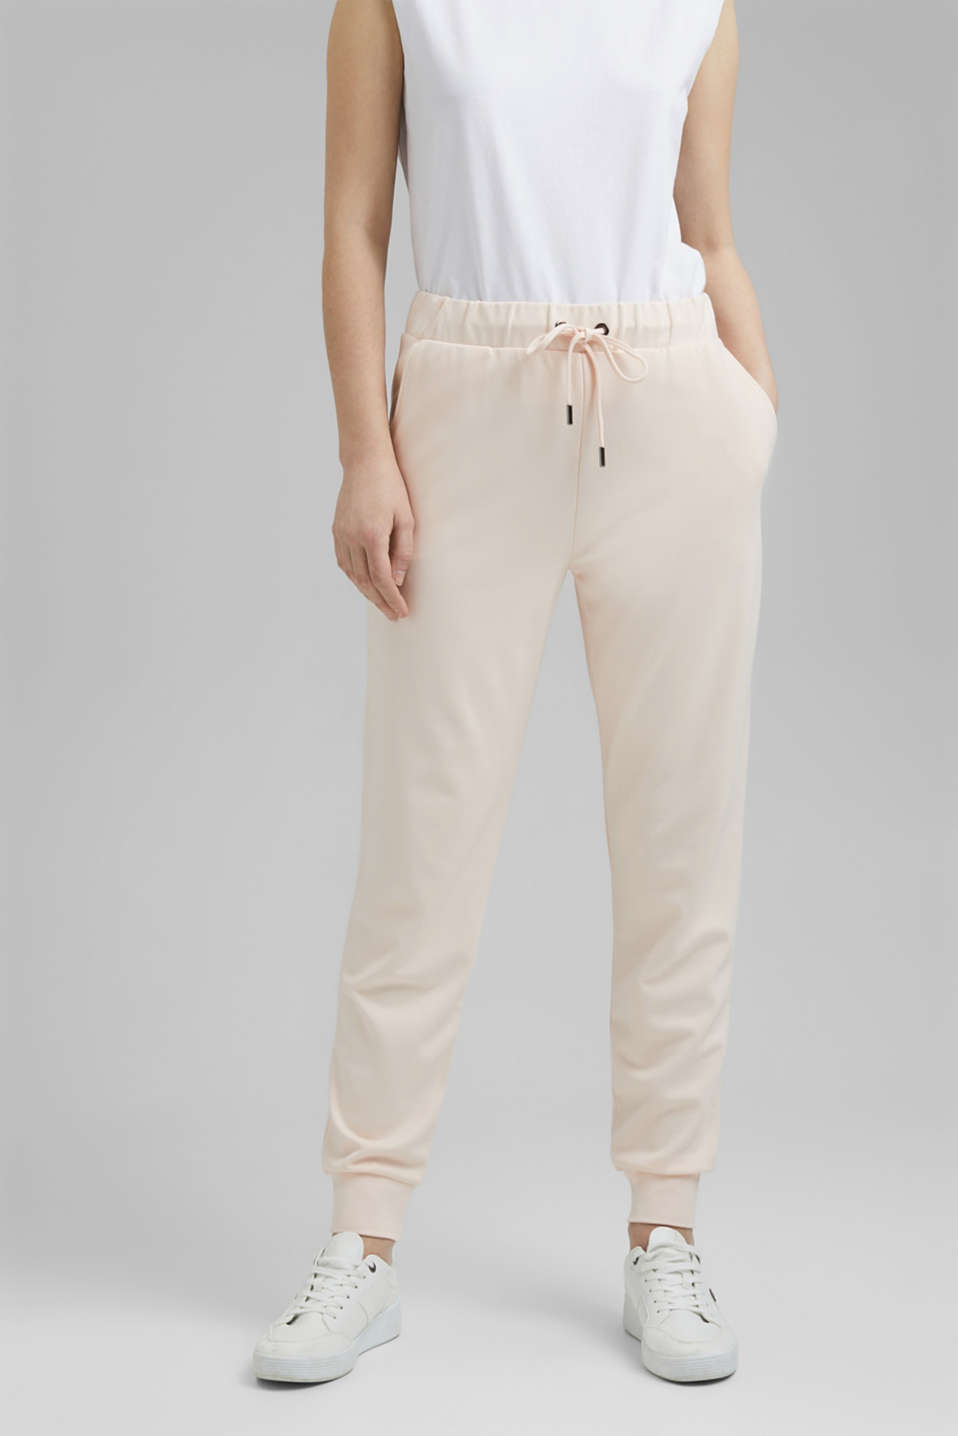 Esprit - athlesure pants